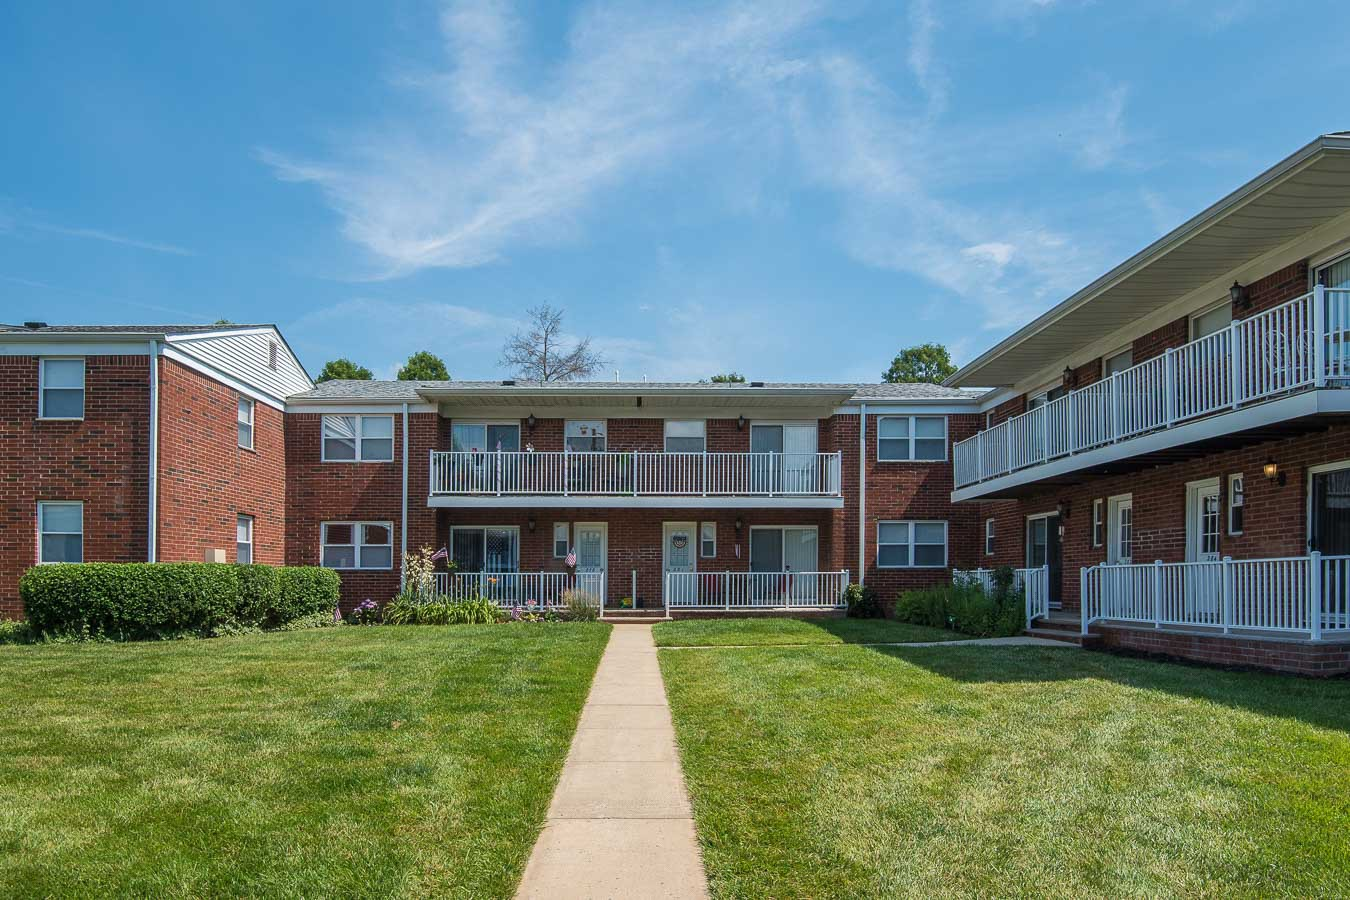 Apartments Near Monmouth Chestnut Court for Monmouth University Students in West Long Branch, NJ